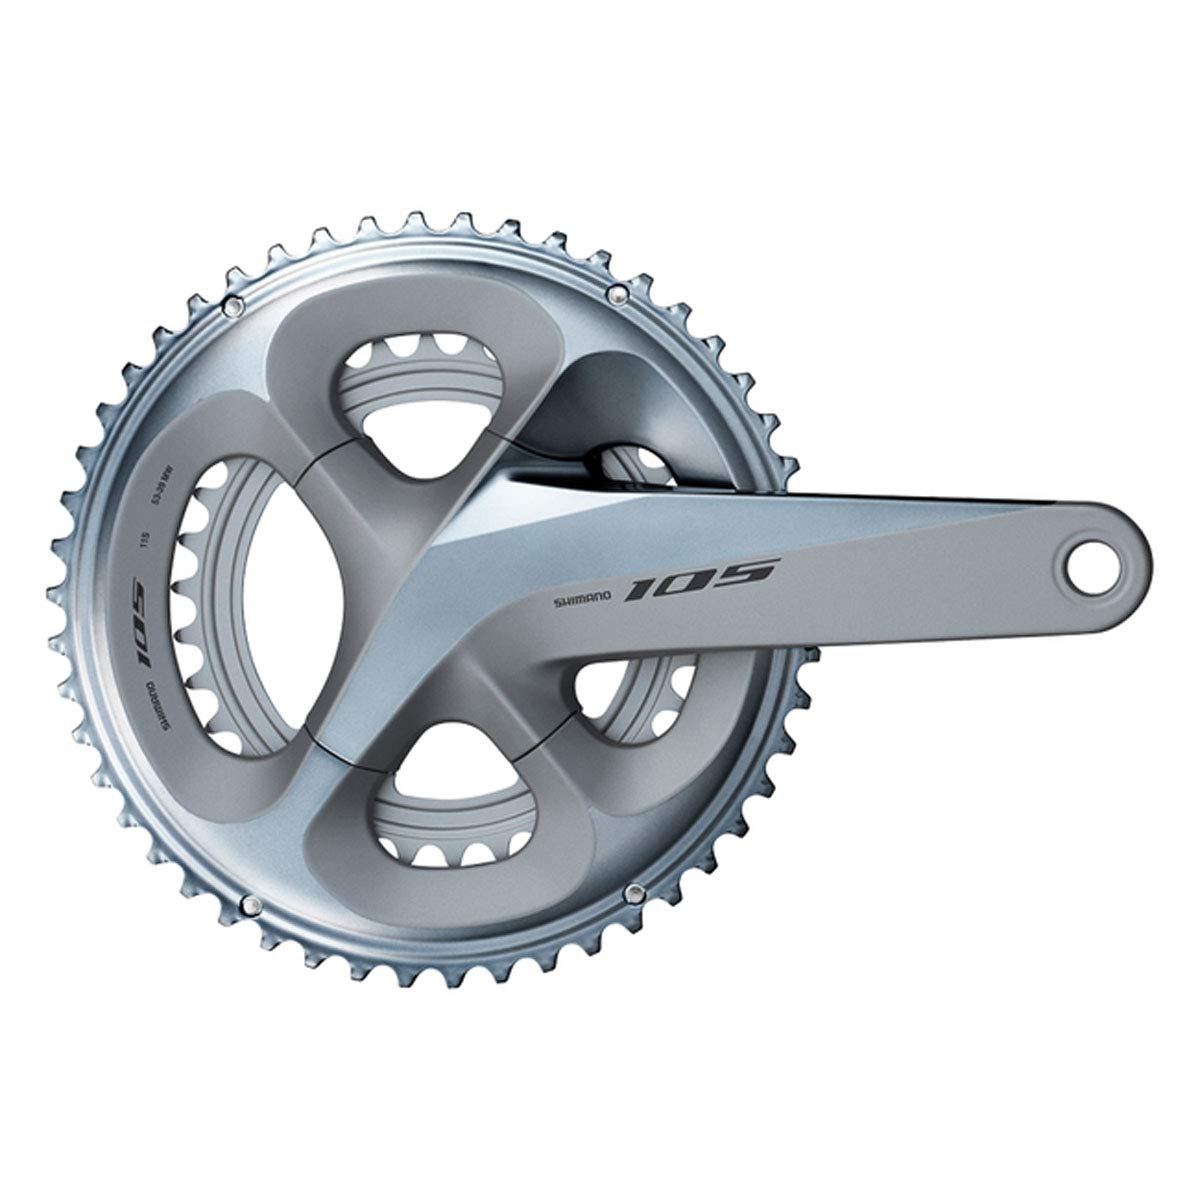 SHIMANO 105 Double Road Bicycle Crank Set - FC-R7000 (Silver - 165MM, 53-39T W/O CG, W/O BB Parts) by SHIMANO